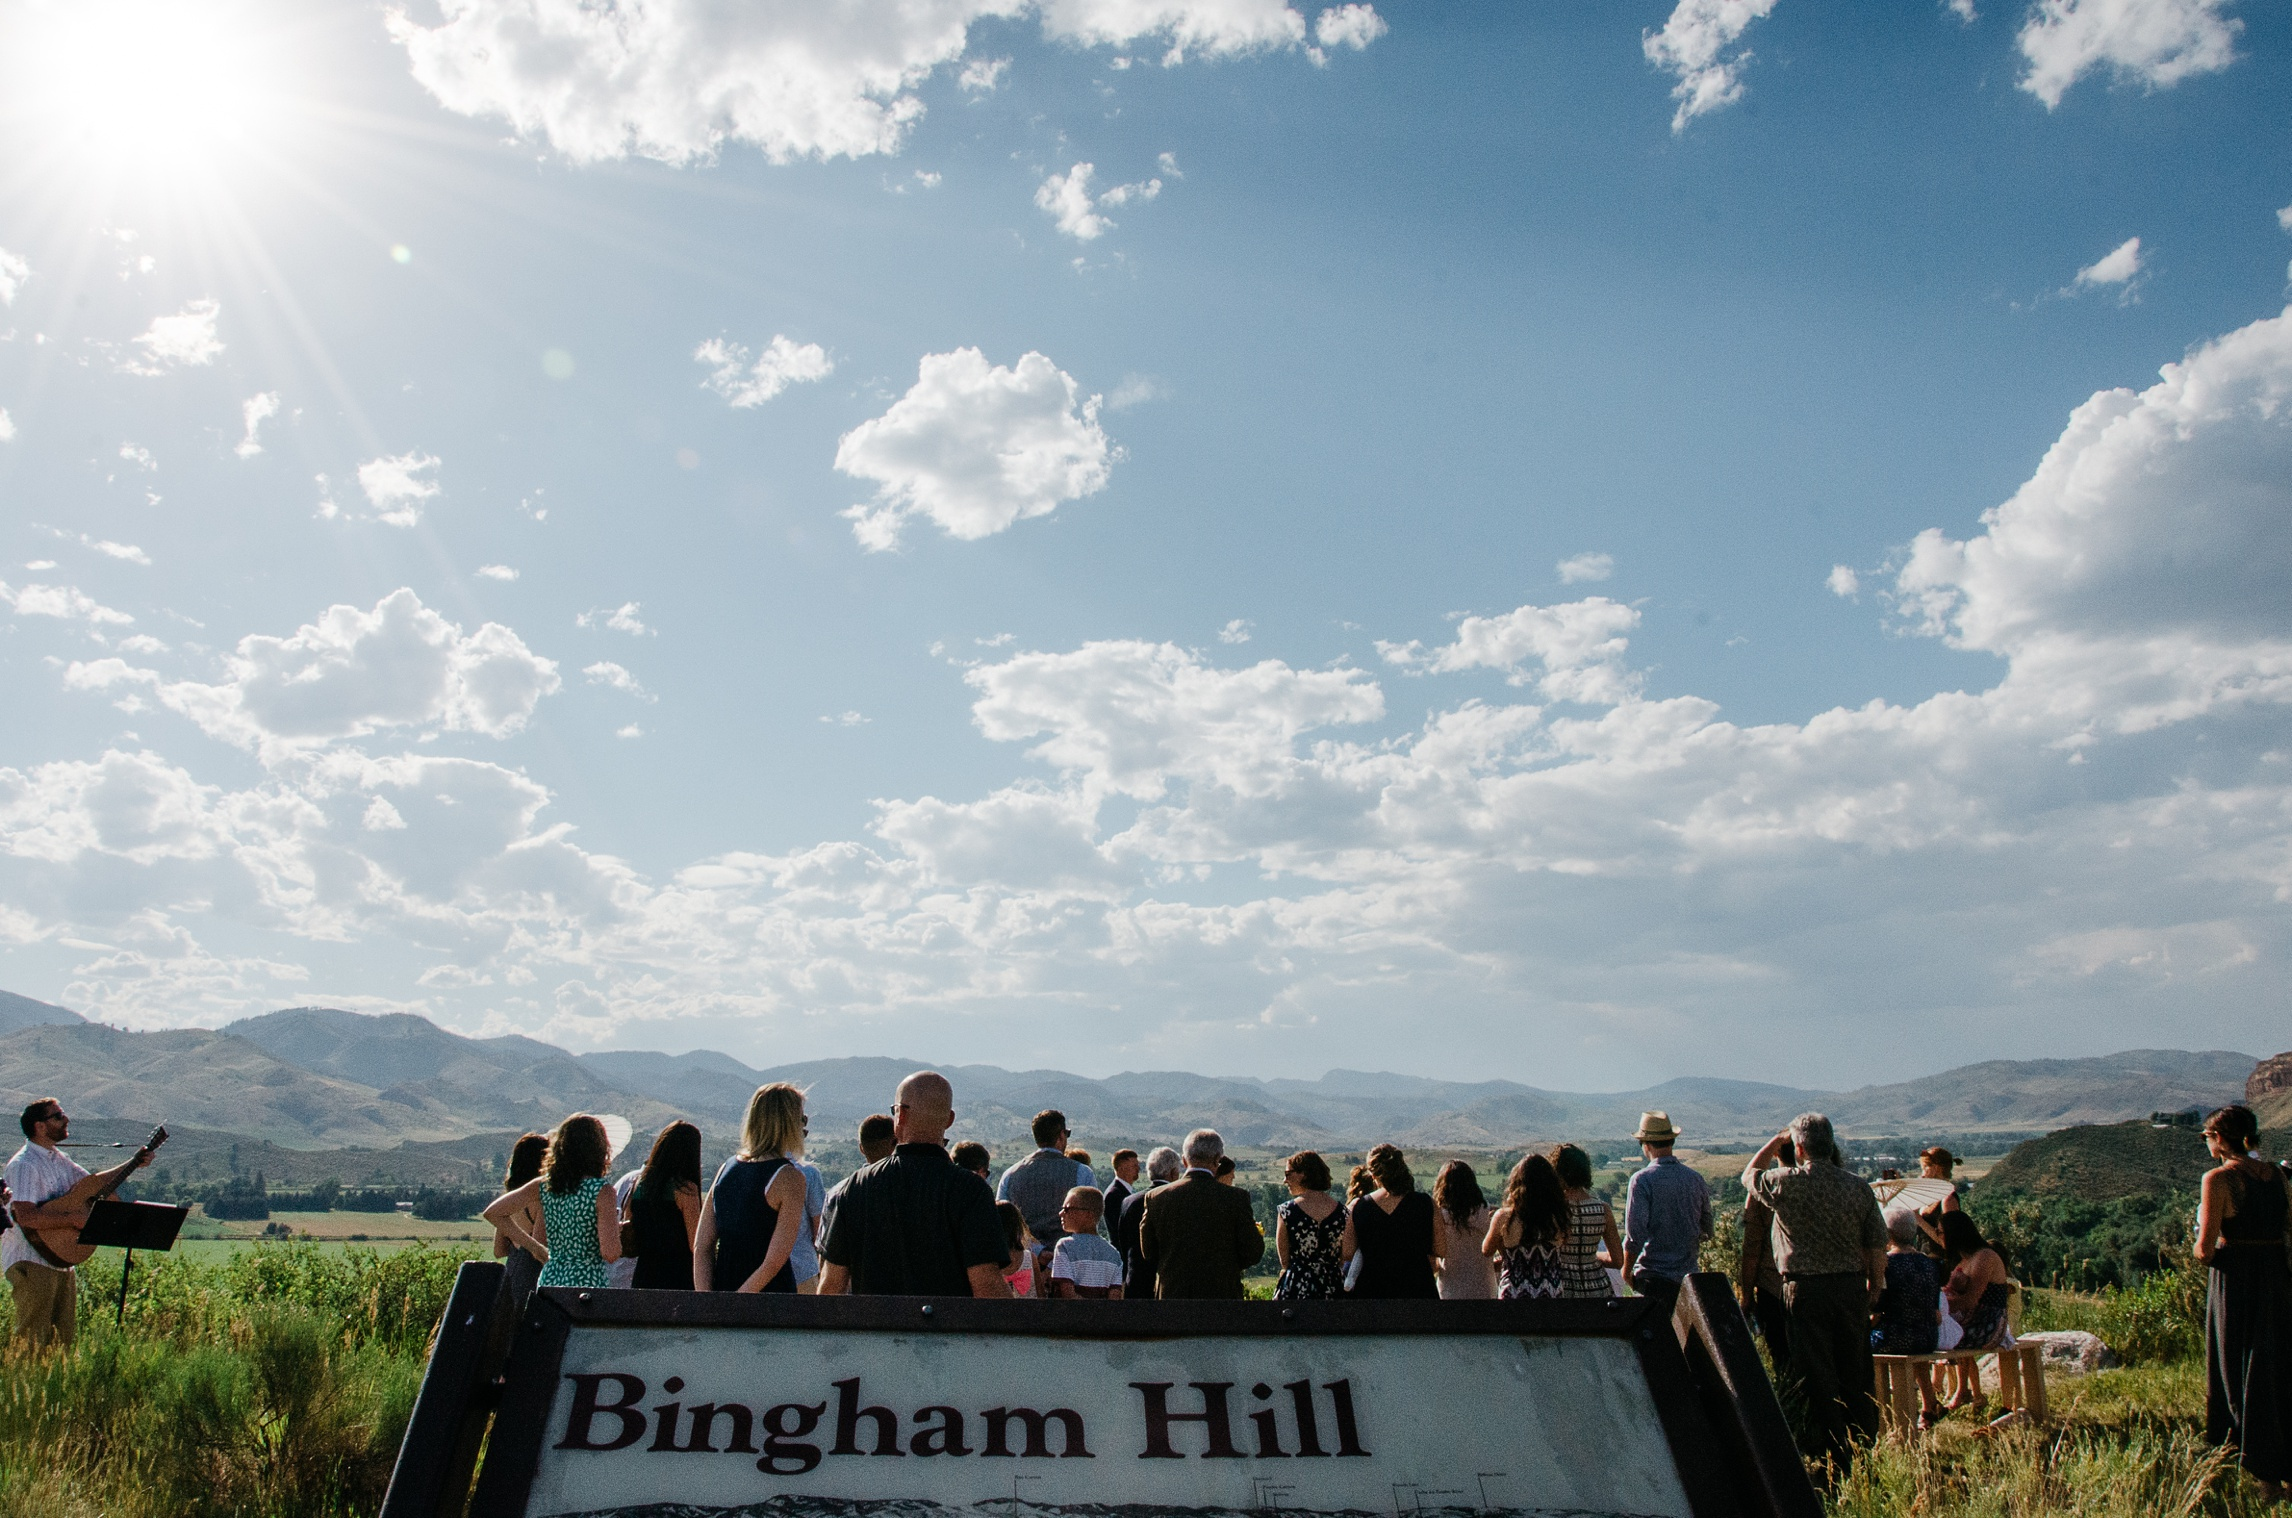 A wedding with an expansive view on top of Bingham Hill outside Fort Collins, Colorado. Wedding photography by Sonja Salzburg of Sonja K Photography.